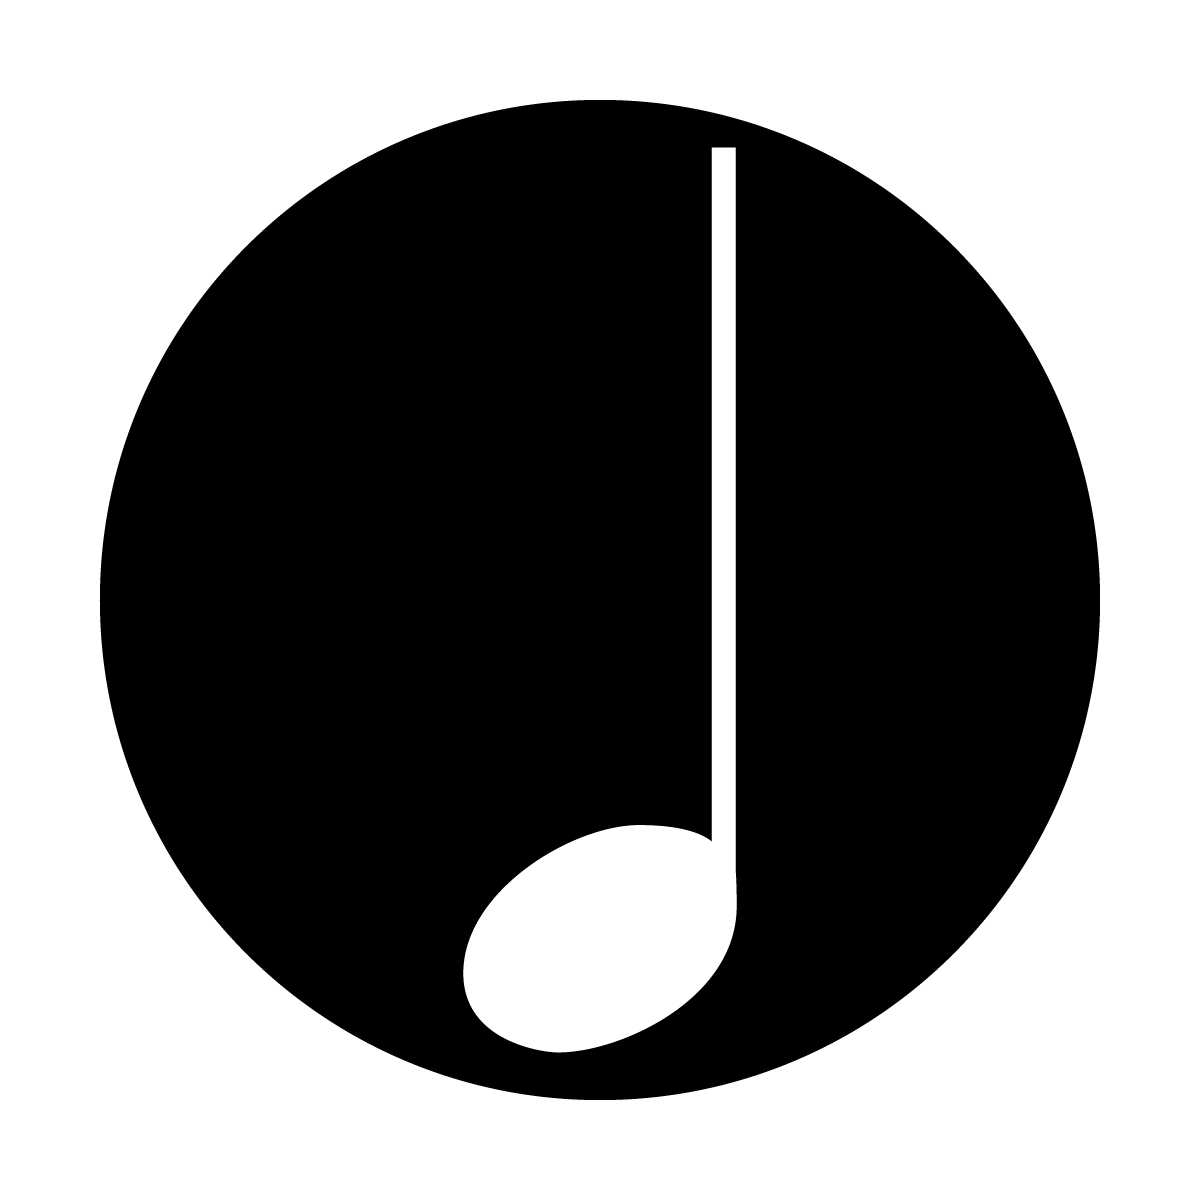 Quarter note png. Images in collection page